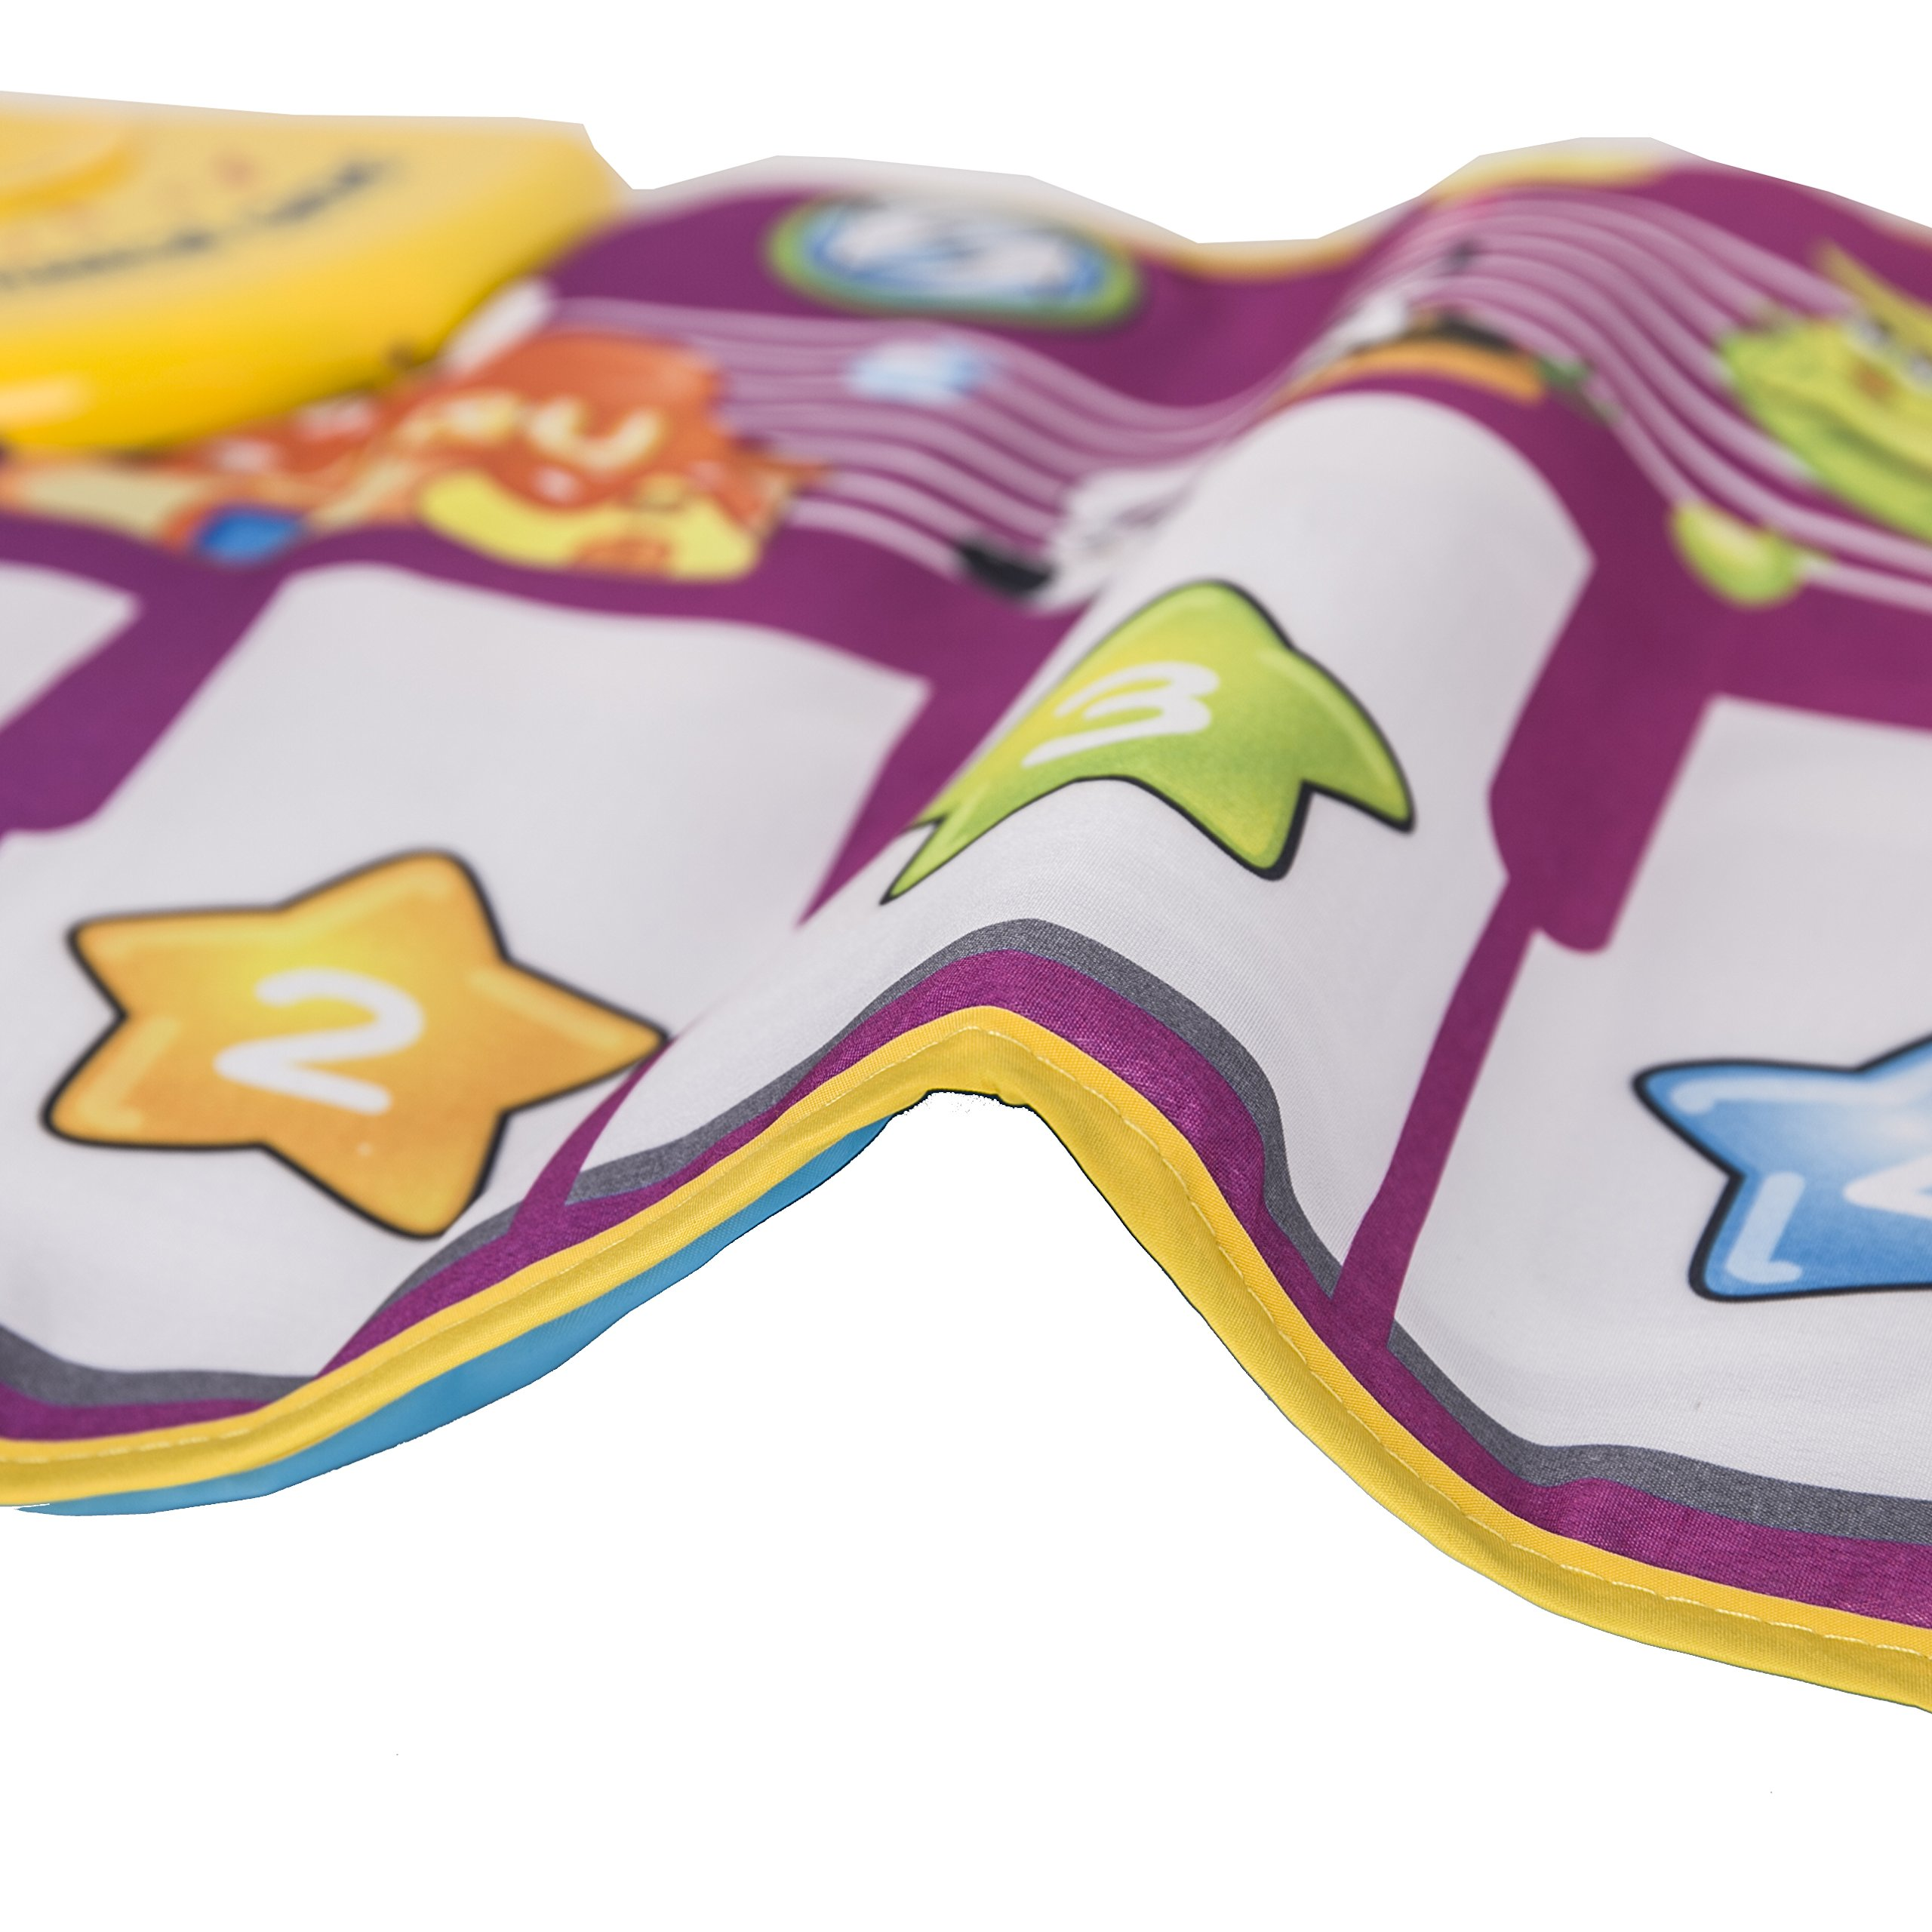 COLORTREE Educational Piano Play Mat Fun Step-to-Play Musical Carpet by COLORTREE (Image #5)